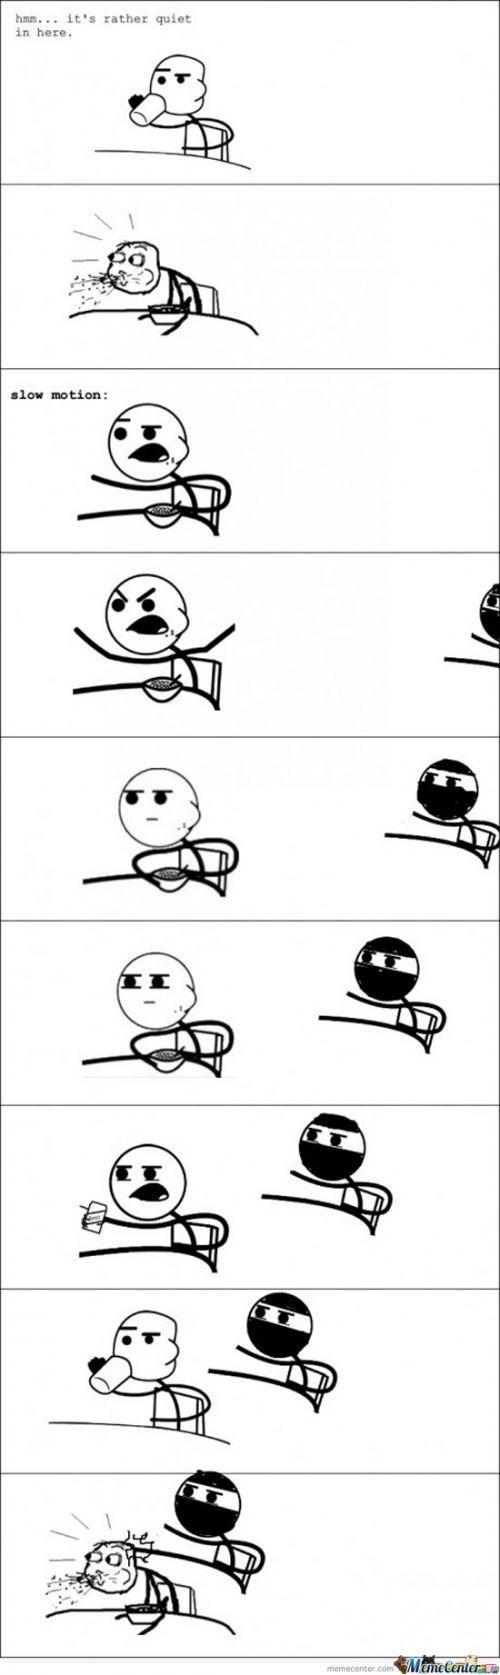 The truth behind Cereal Guy